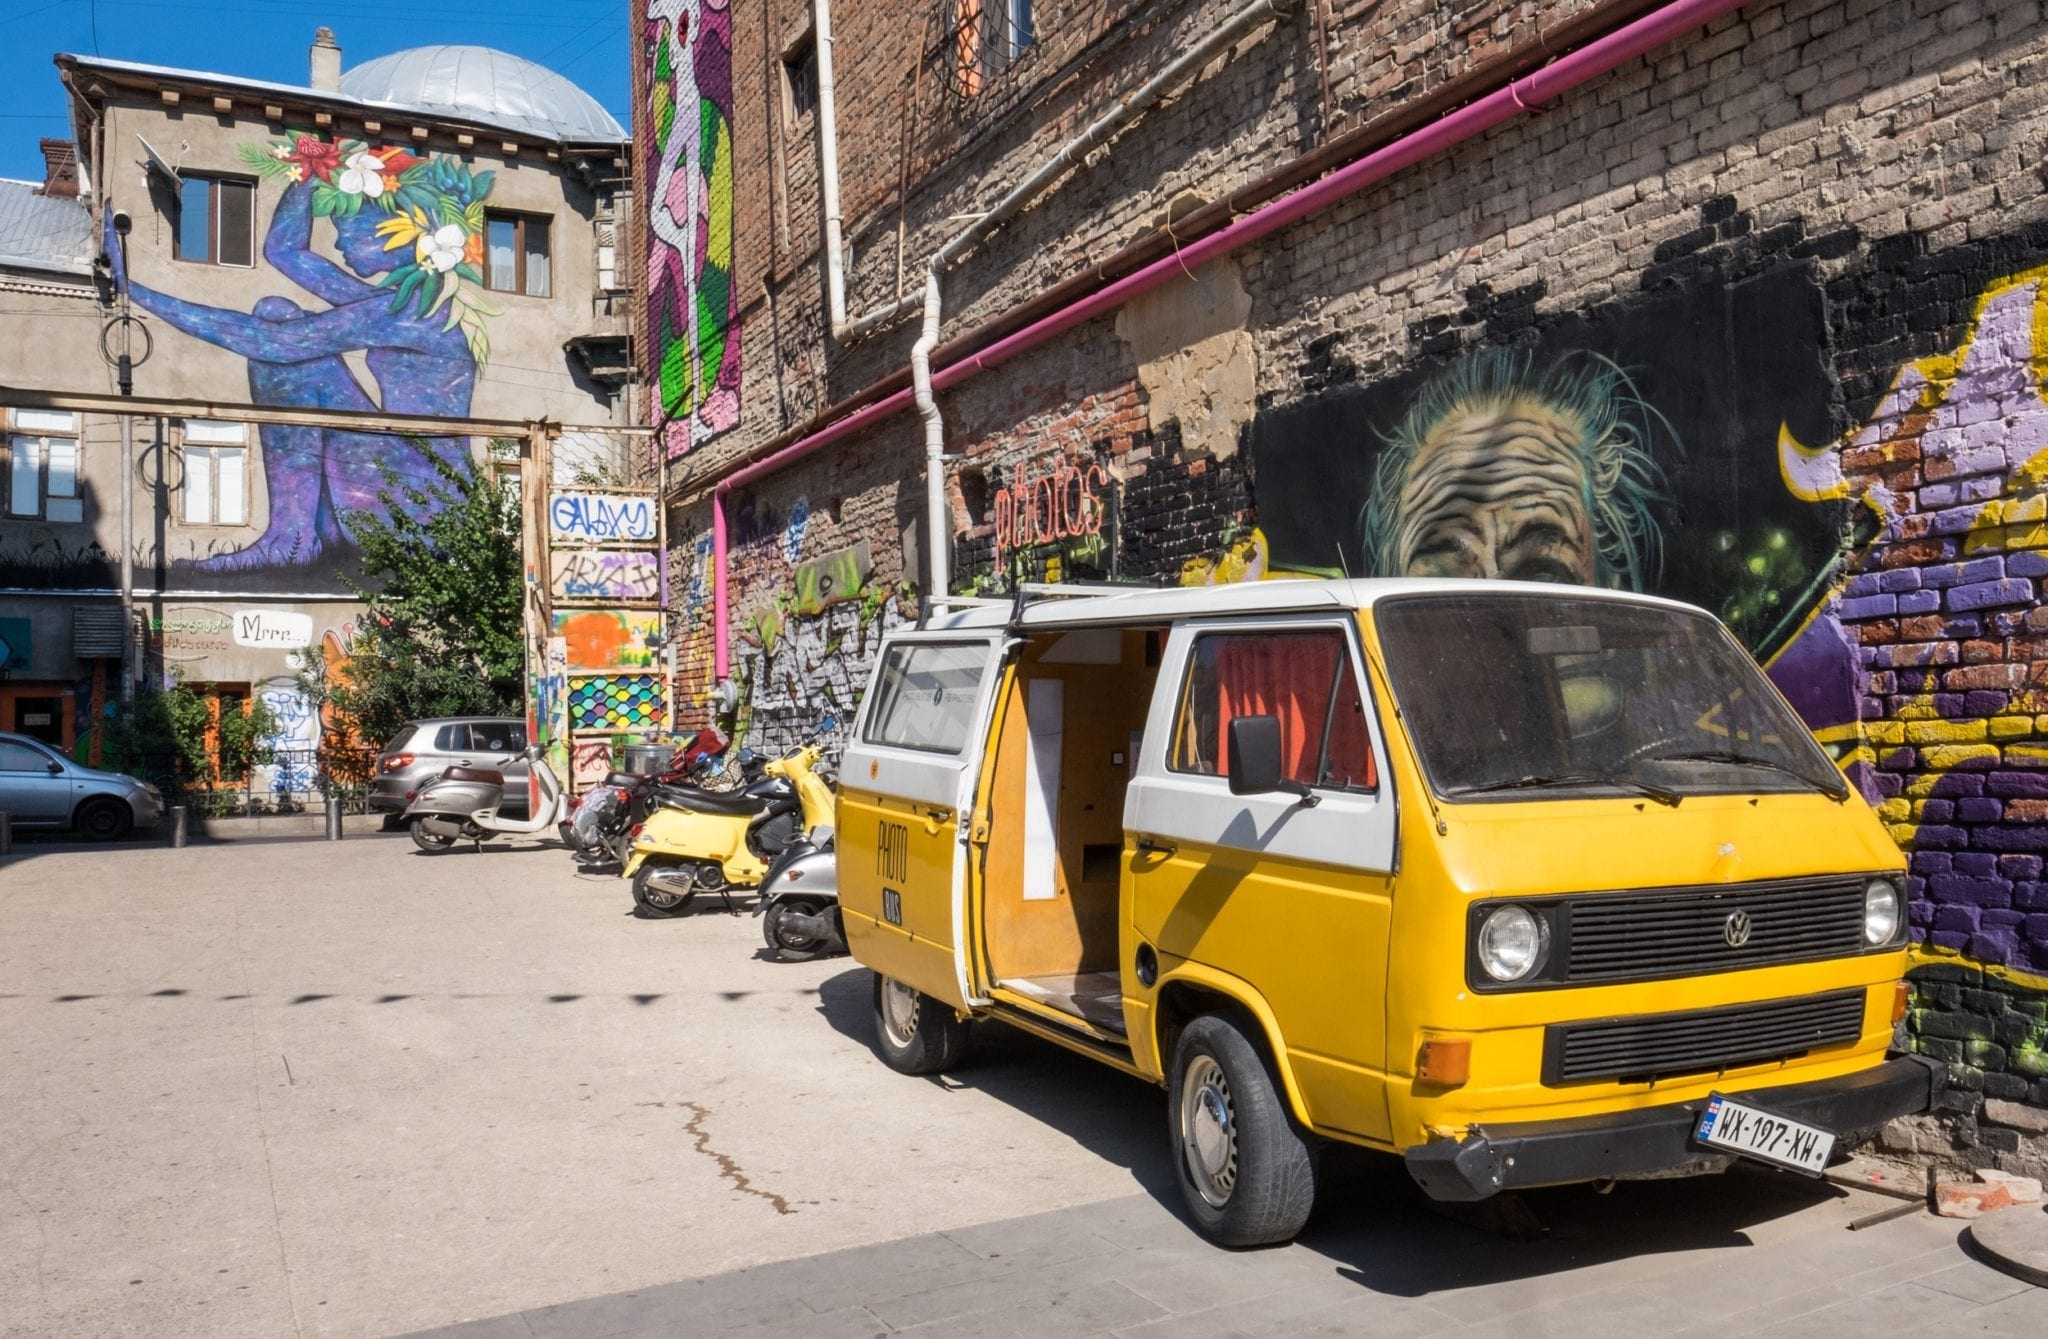 A yellow van parked against a street art-covered wall, with more murals in the background. On the street in Tbilisi.